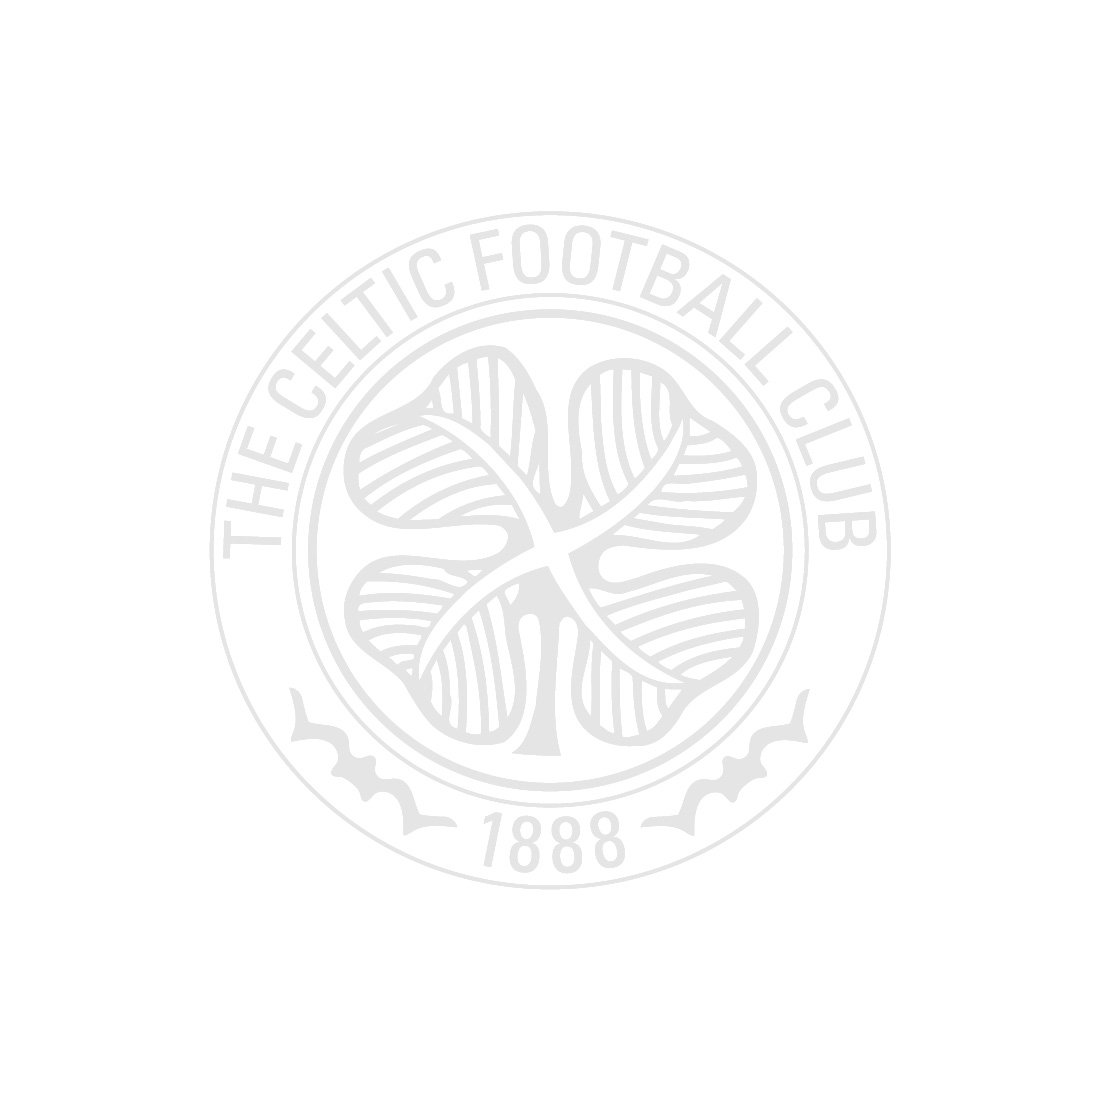 Celtic Essentials Raised Print T-shirt